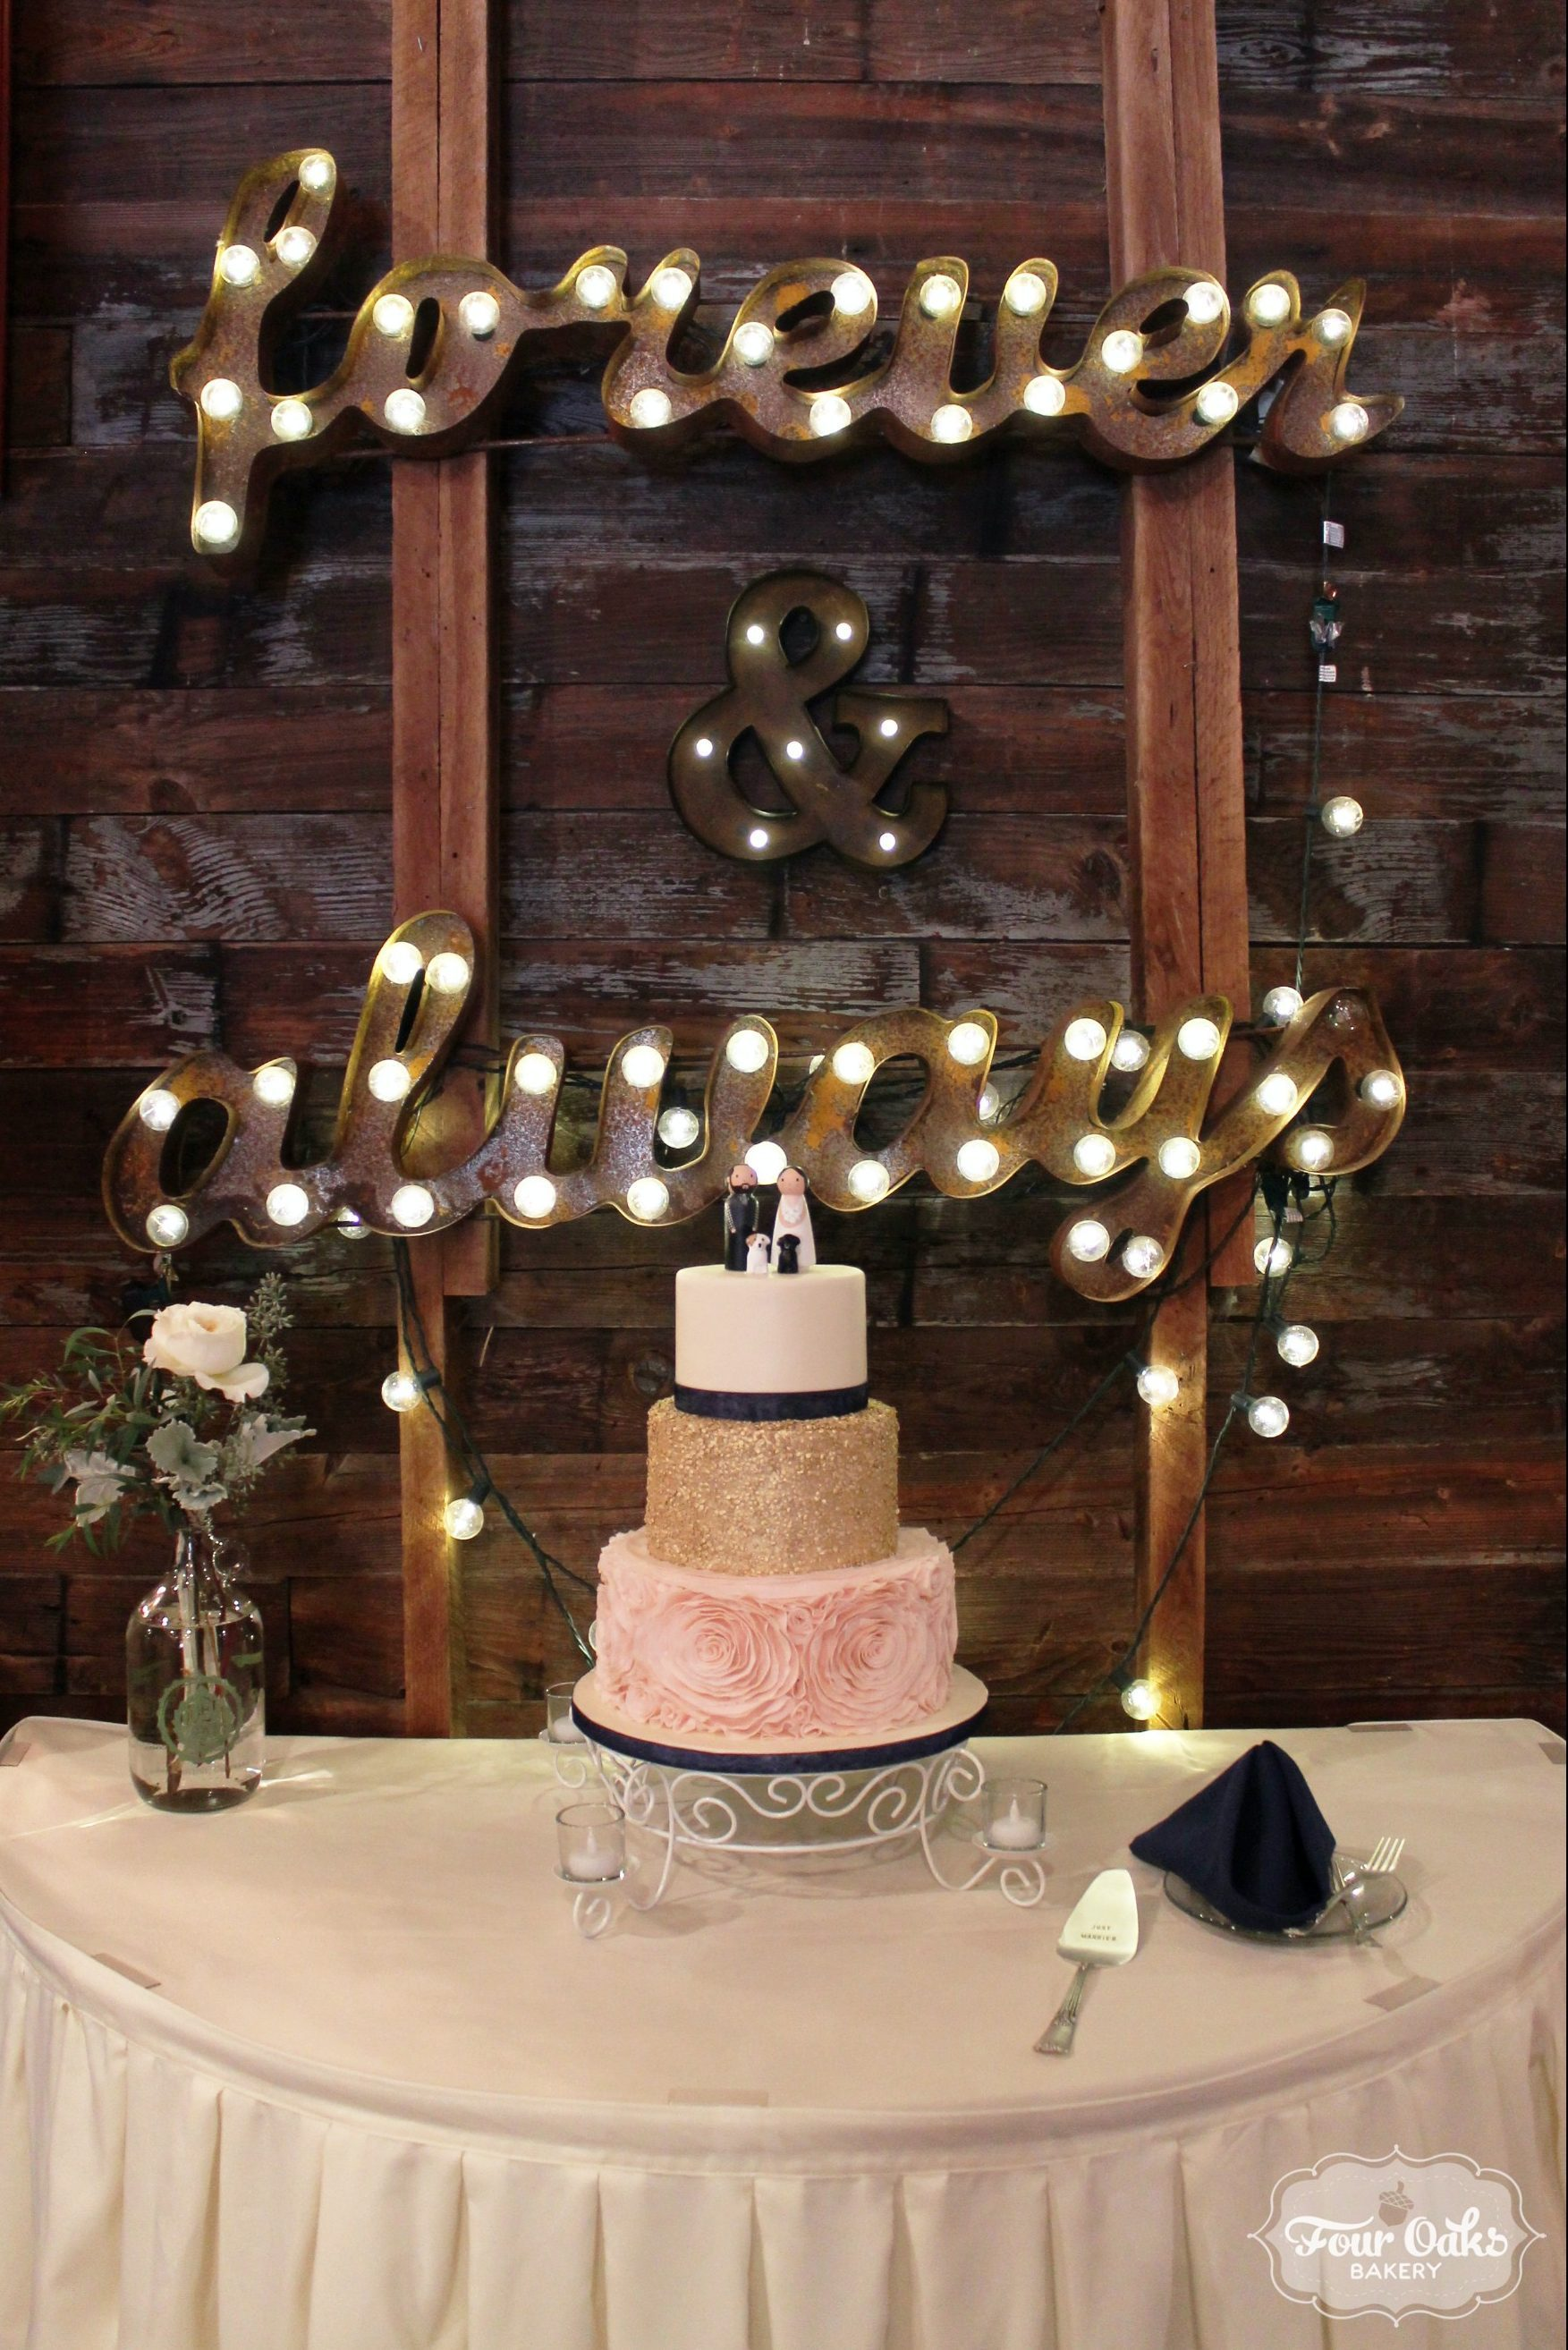 Ashley and Greg's Blush, Ivory, and Gold Wedding Cake at The Barn at West Overton in Scottdale, PA